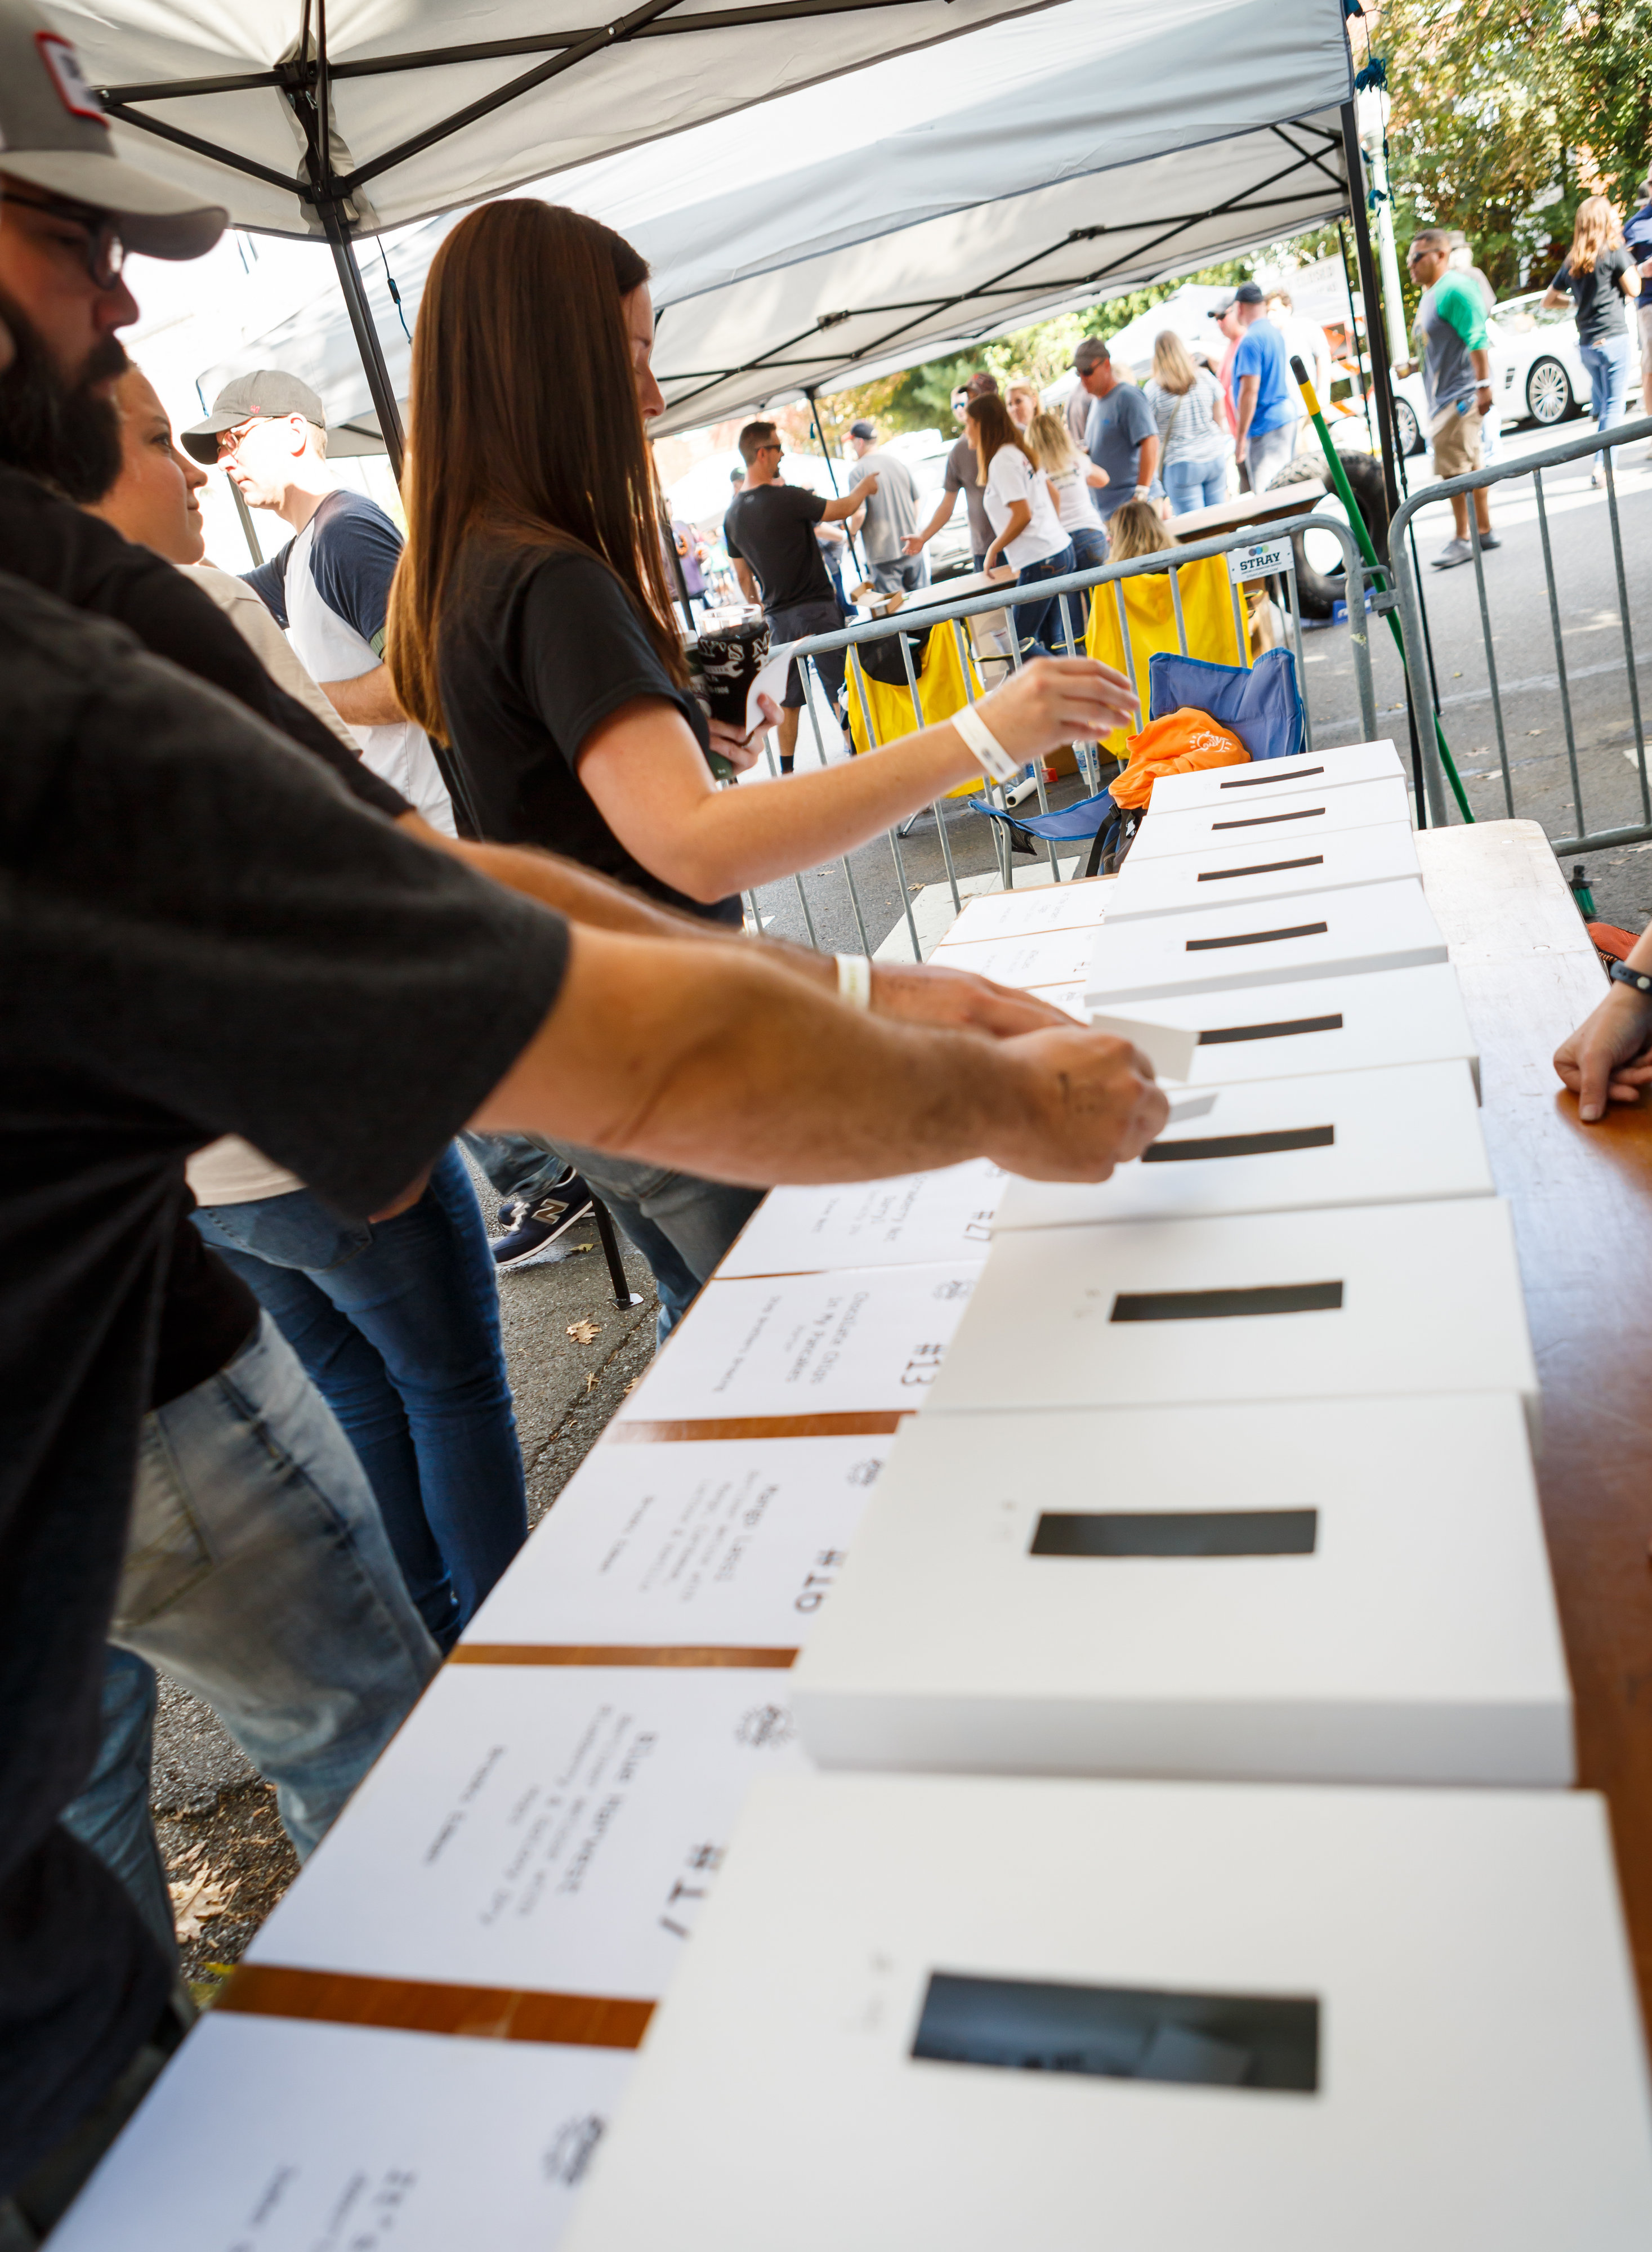 Lititz Craft Beer Fest – A charity fundraising craft beer